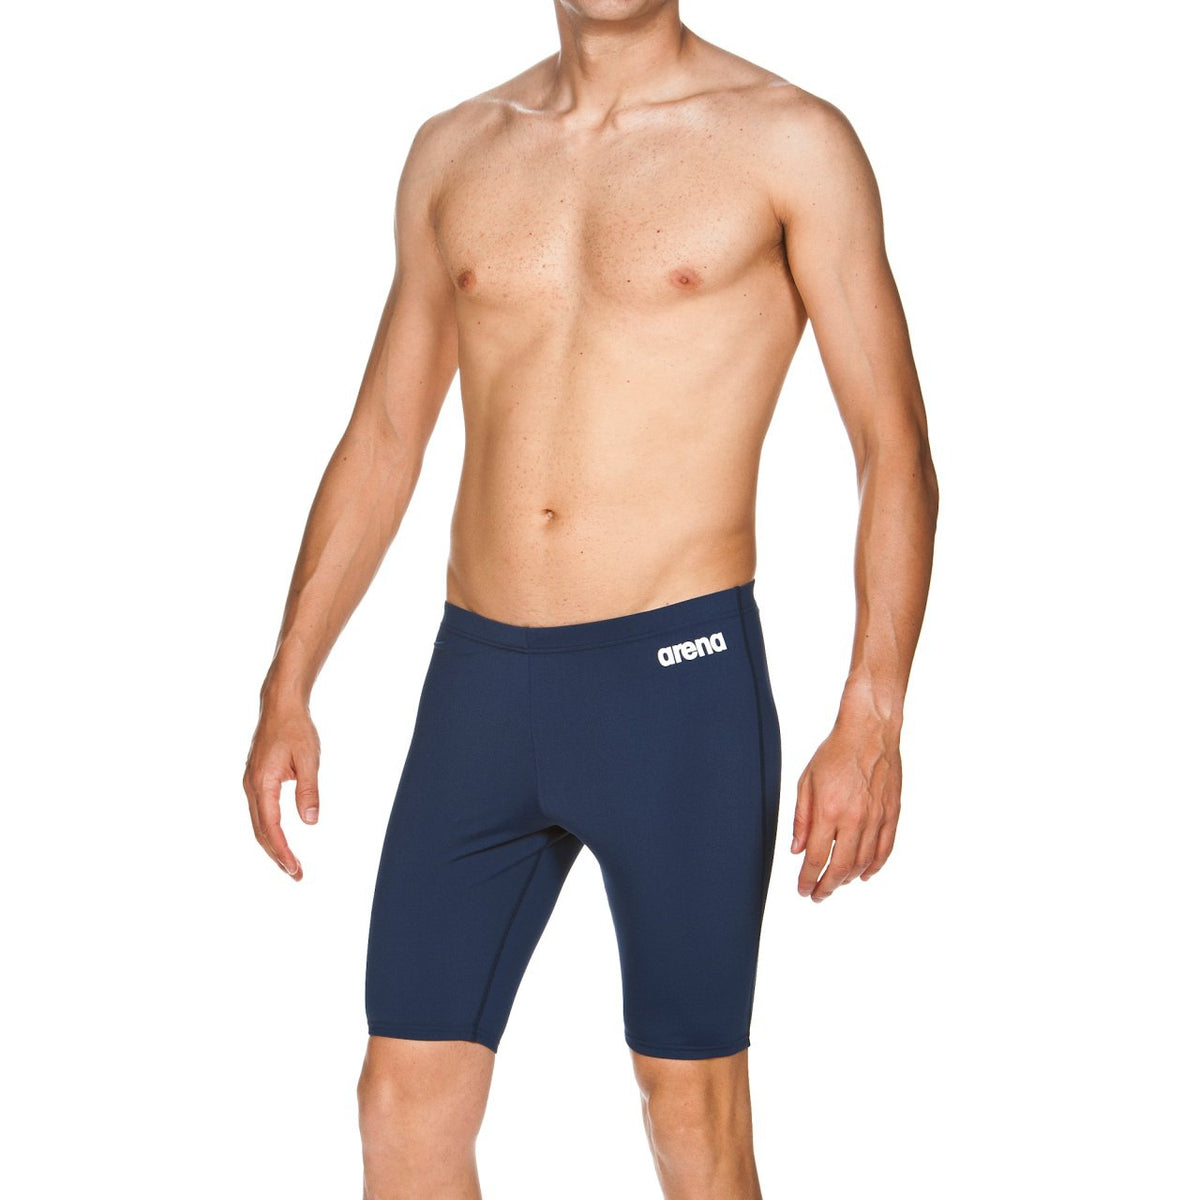 Arena Training - Solid Men's Jammer - Black, Navy-TechSuits.ca